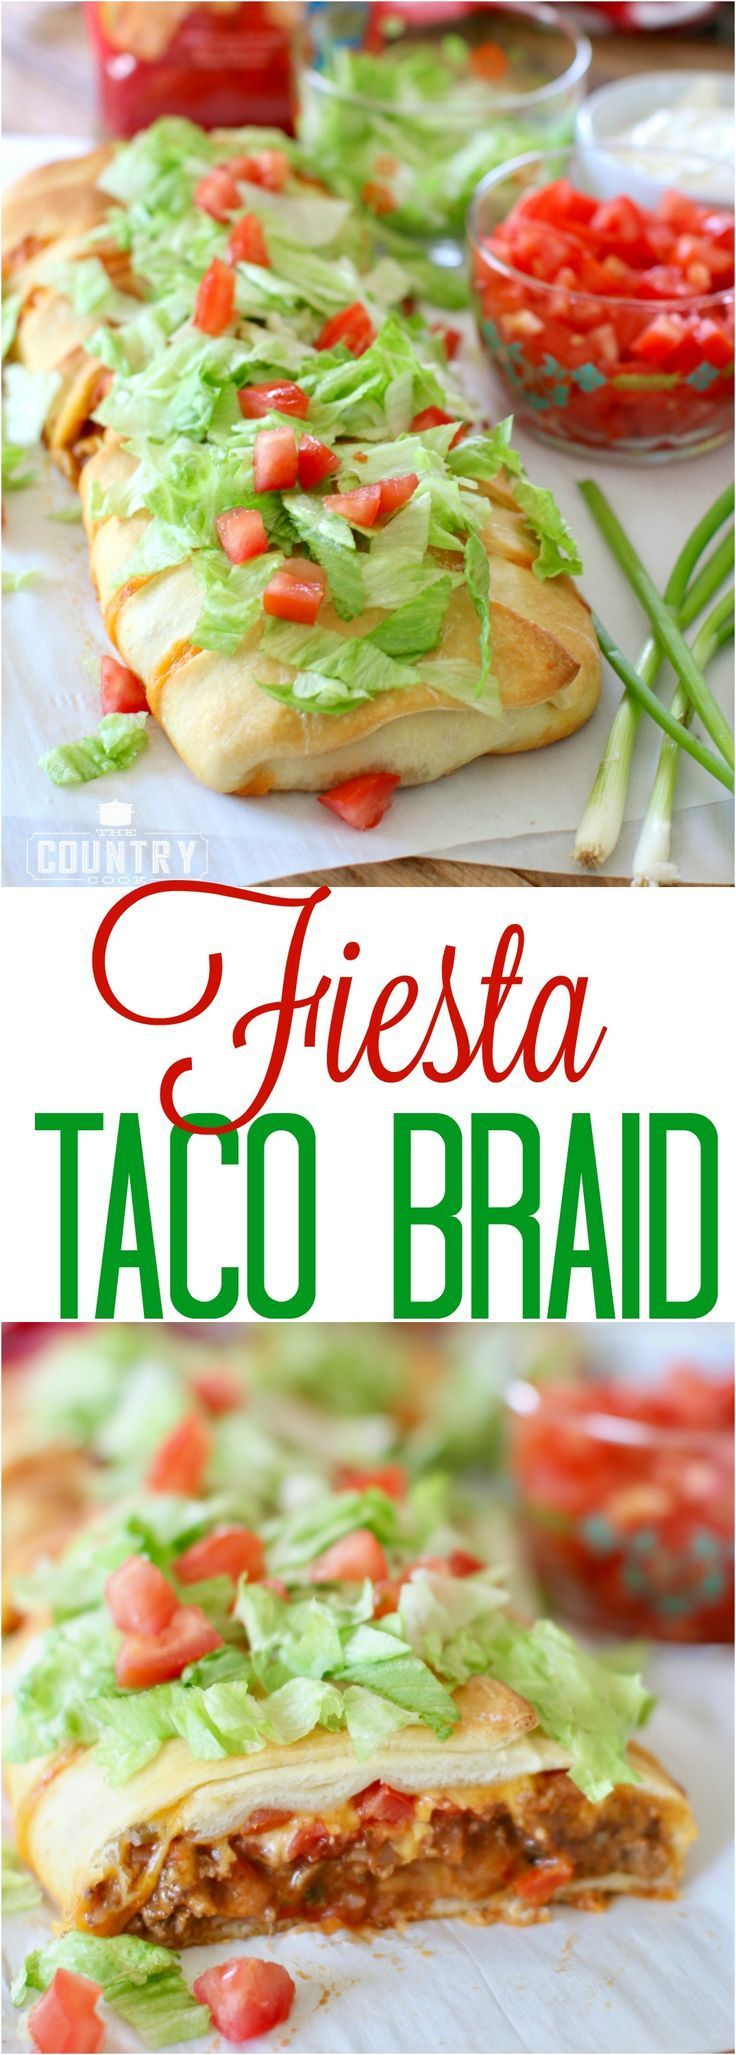 Fiesta Taco Braid recipe from The Country Cook. So simple and so yummy - a family favorite!